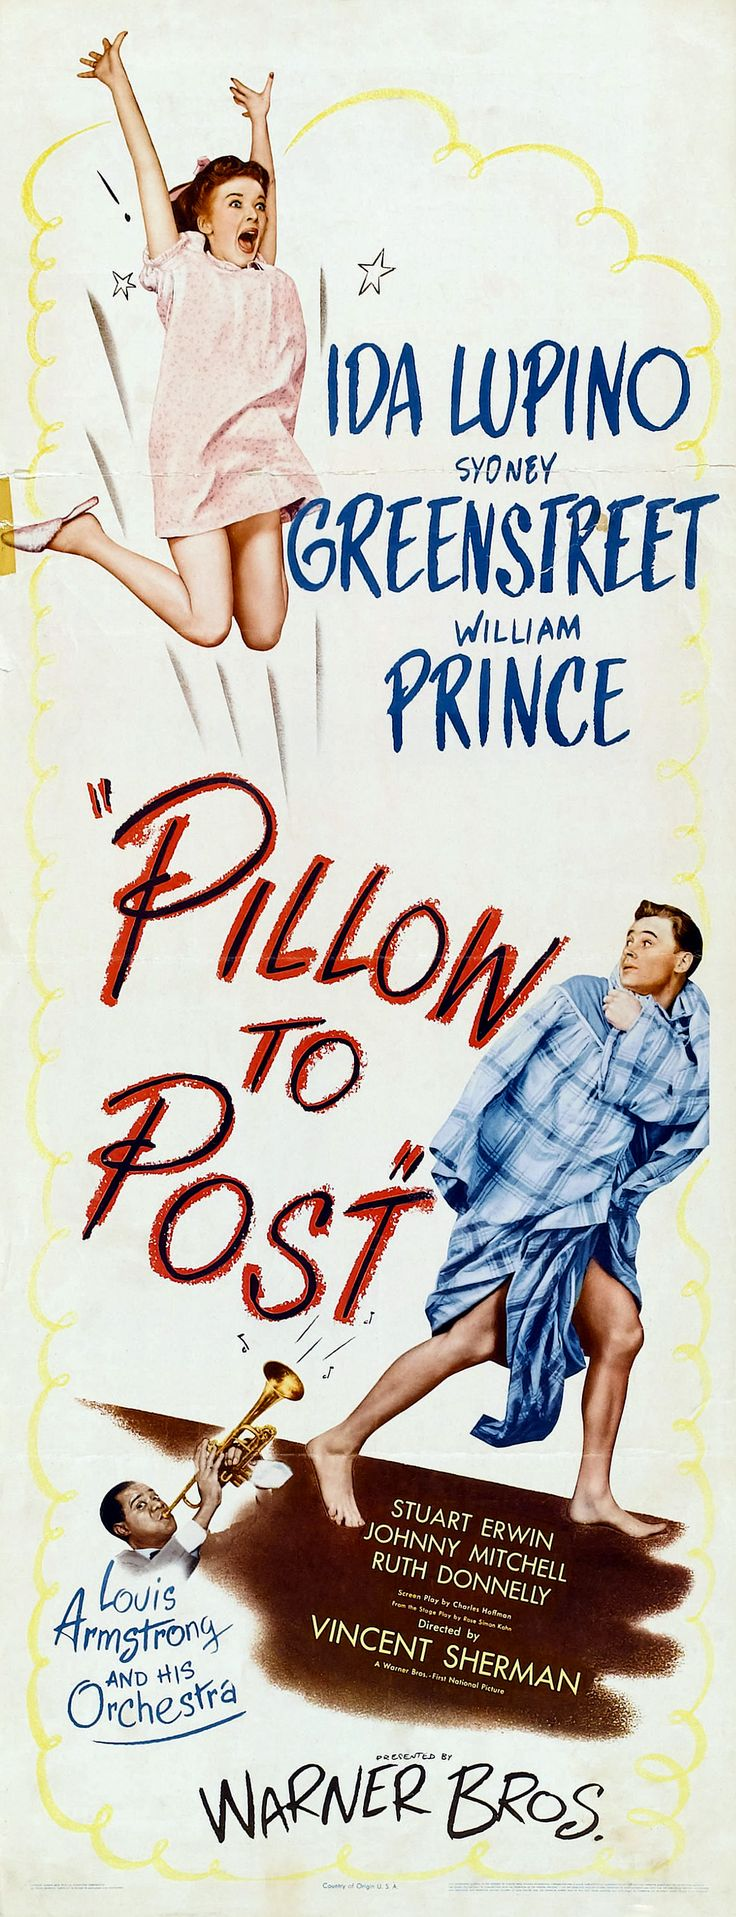 Pillow to Post (1945) Stars: Ida Lupino, Sydney Greenstreet, William Prince, Stuart Erwin, Louis Armstrong ~ Director: Vincent Sherman